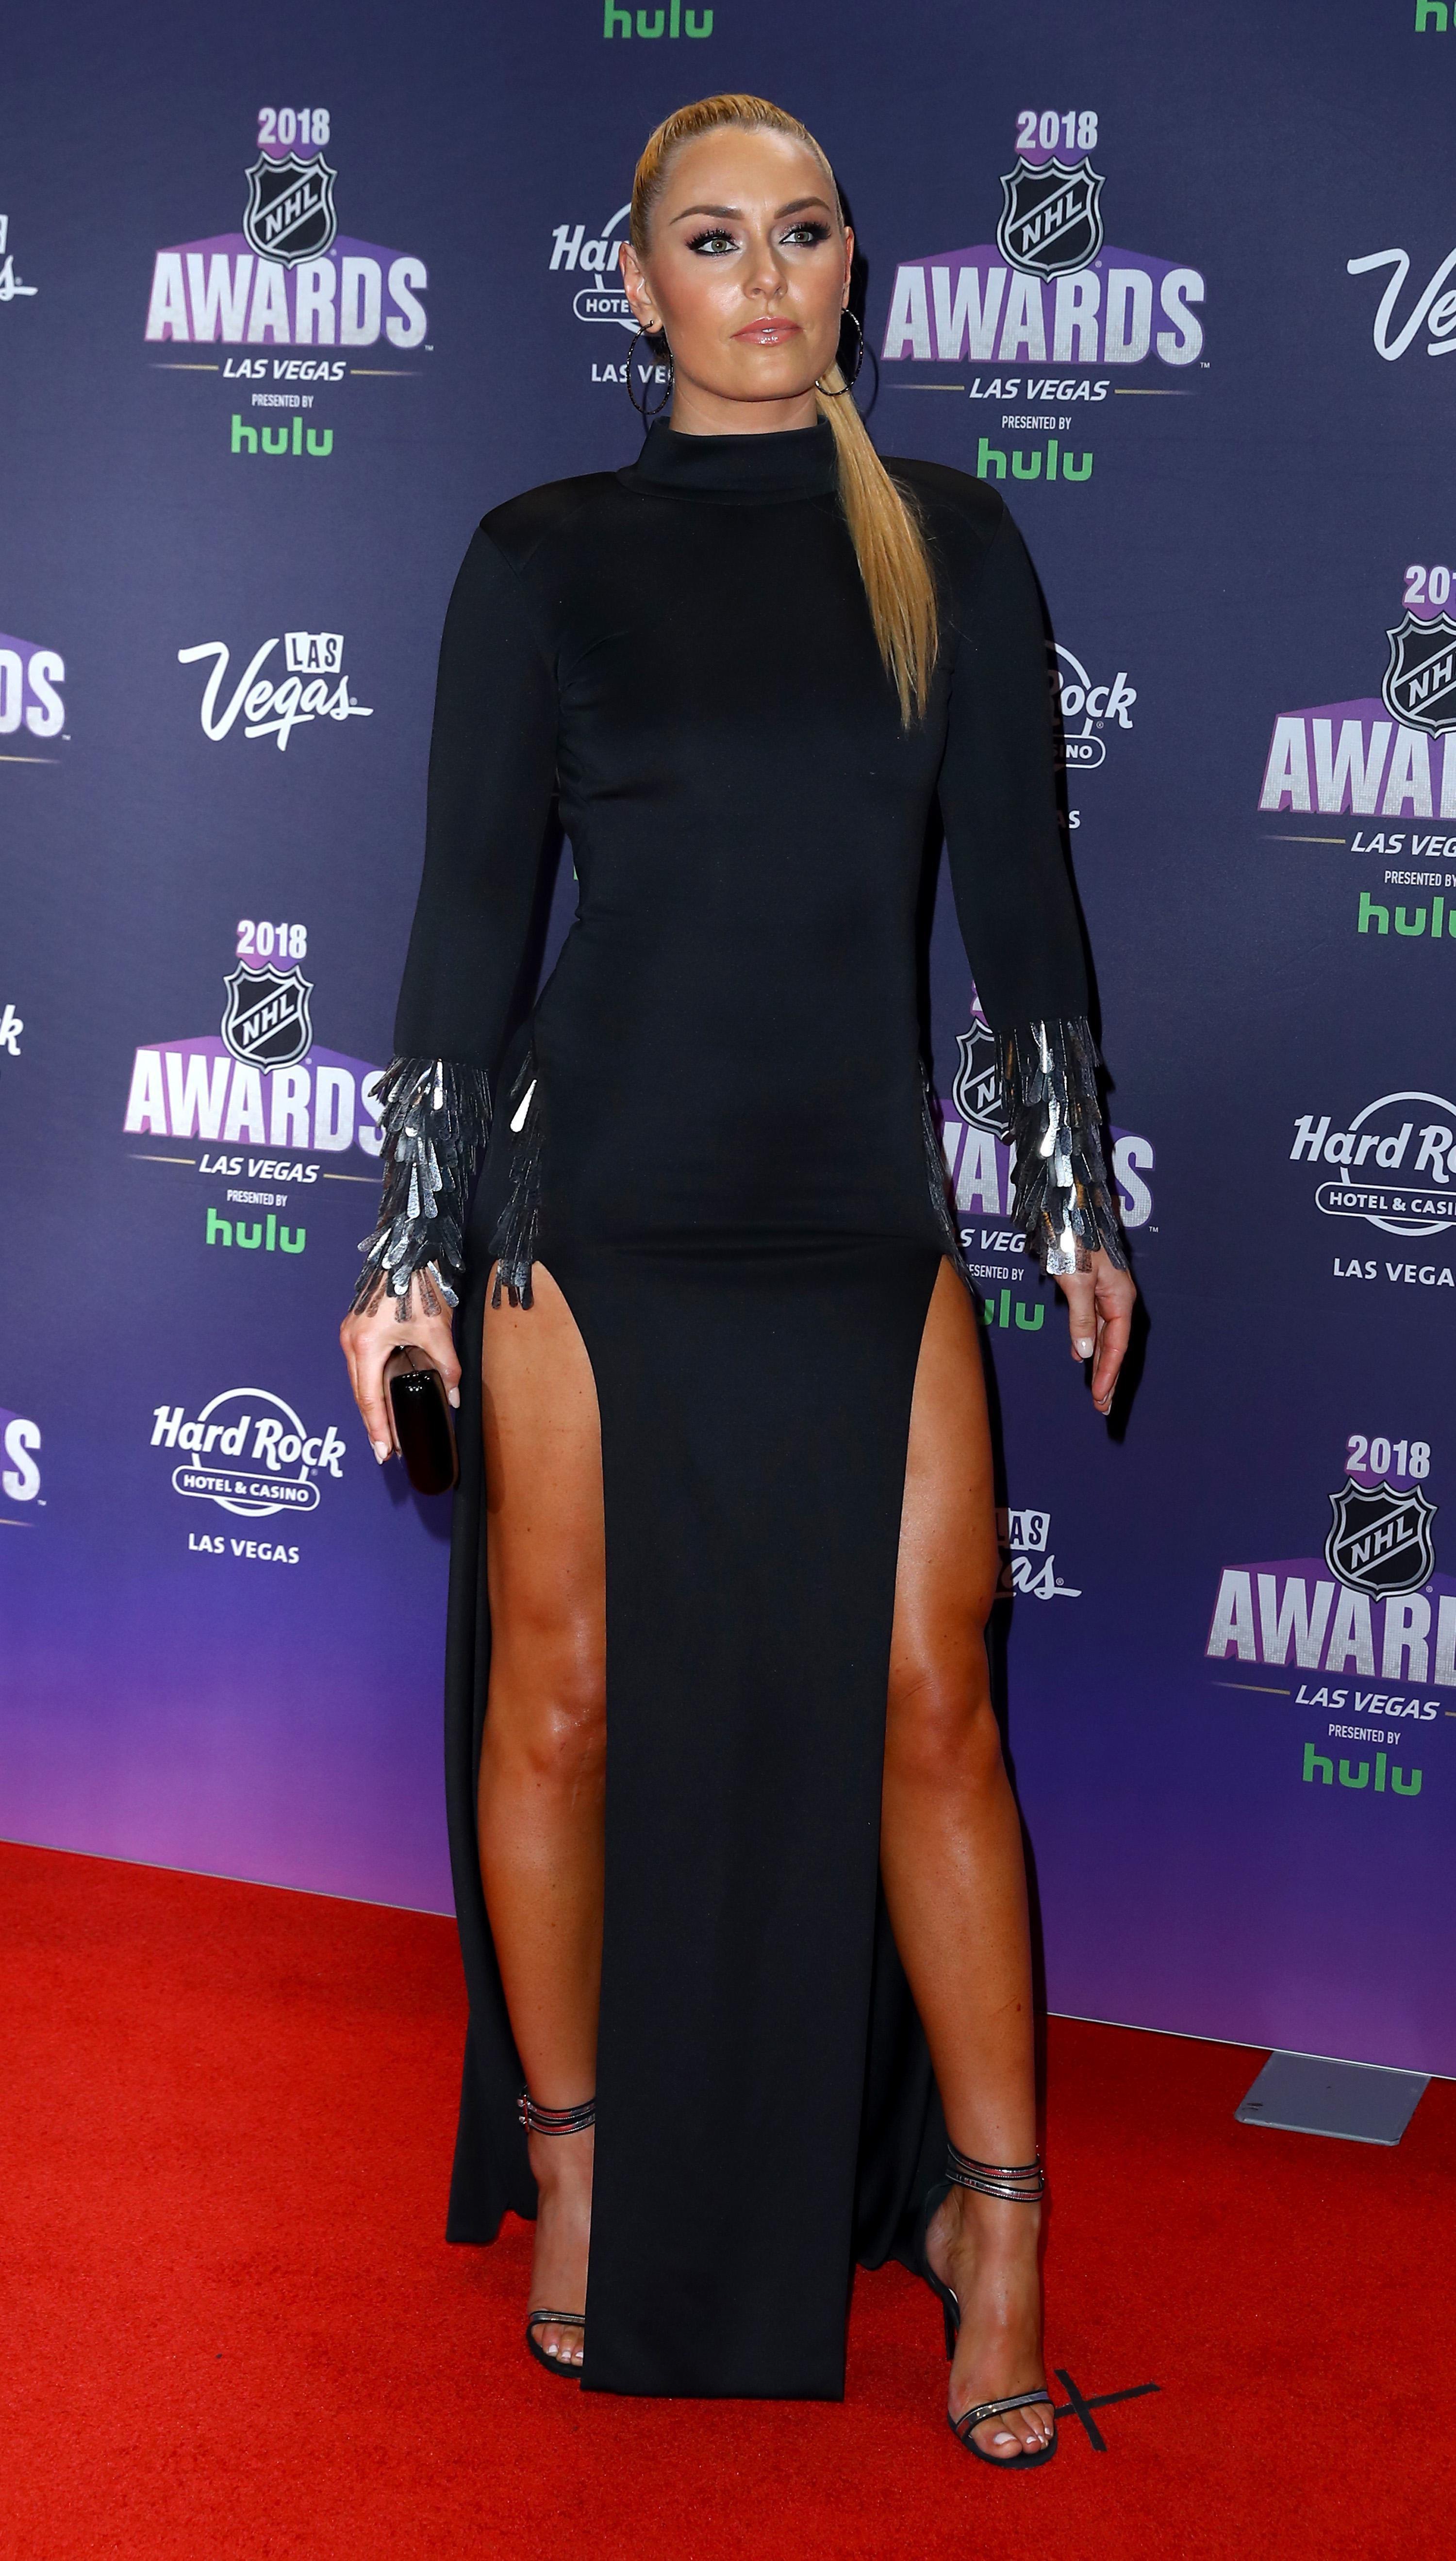 Feet Lindsey Vonn naked (81 foto and video), Sexy, Sideboobs, Boobs, swimsuit 2015